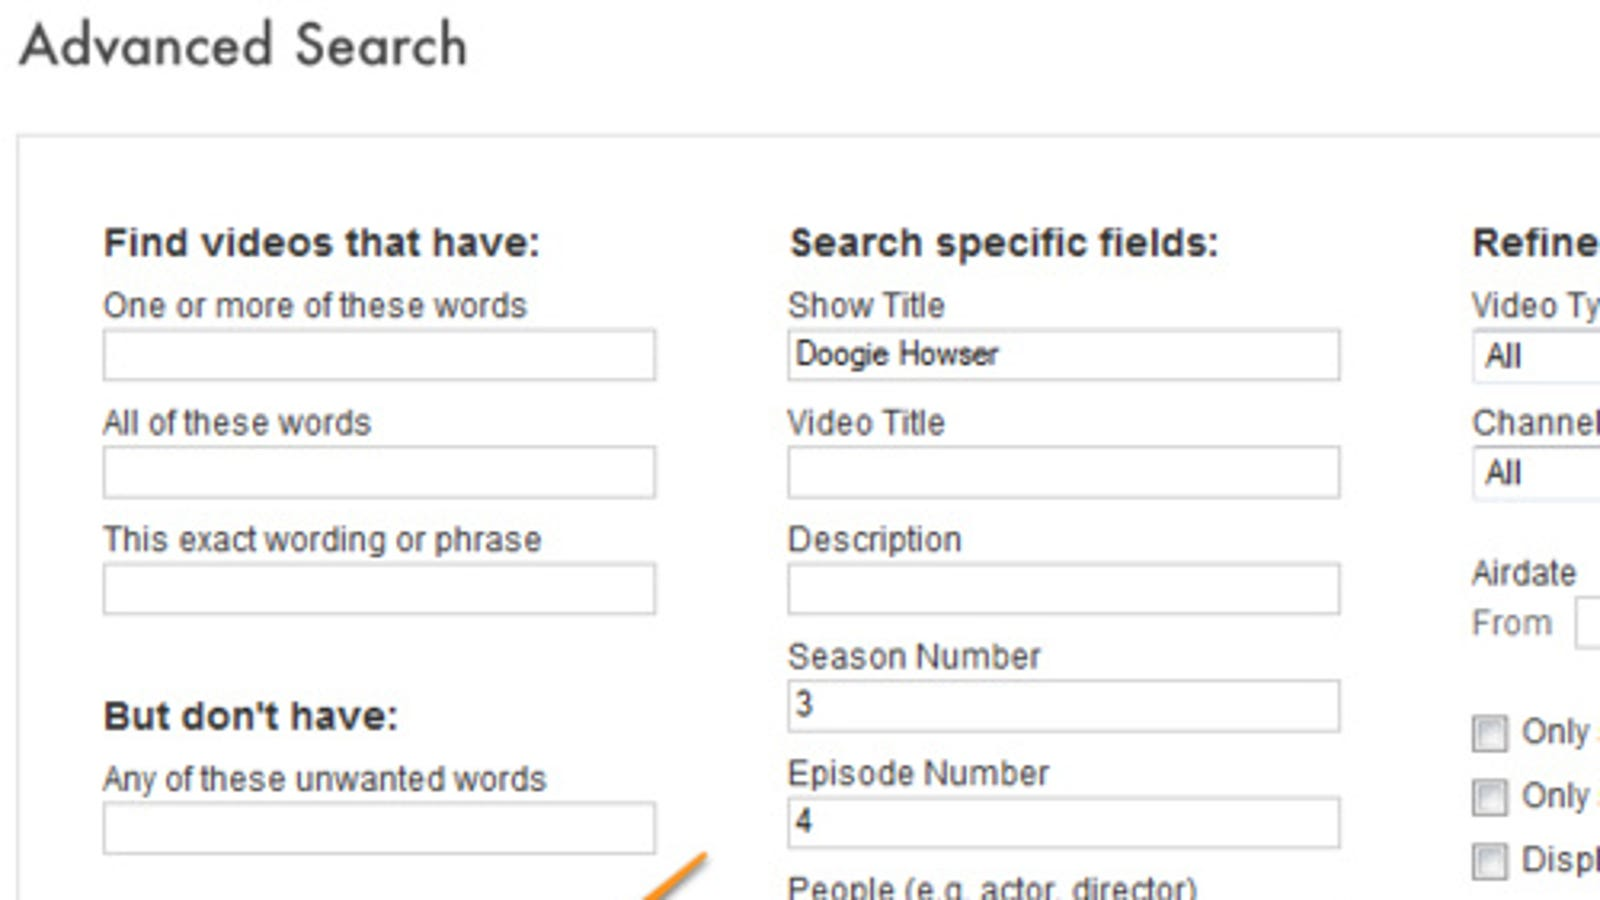 Hulu Advanced Search Helps You Find Specific Episodes More